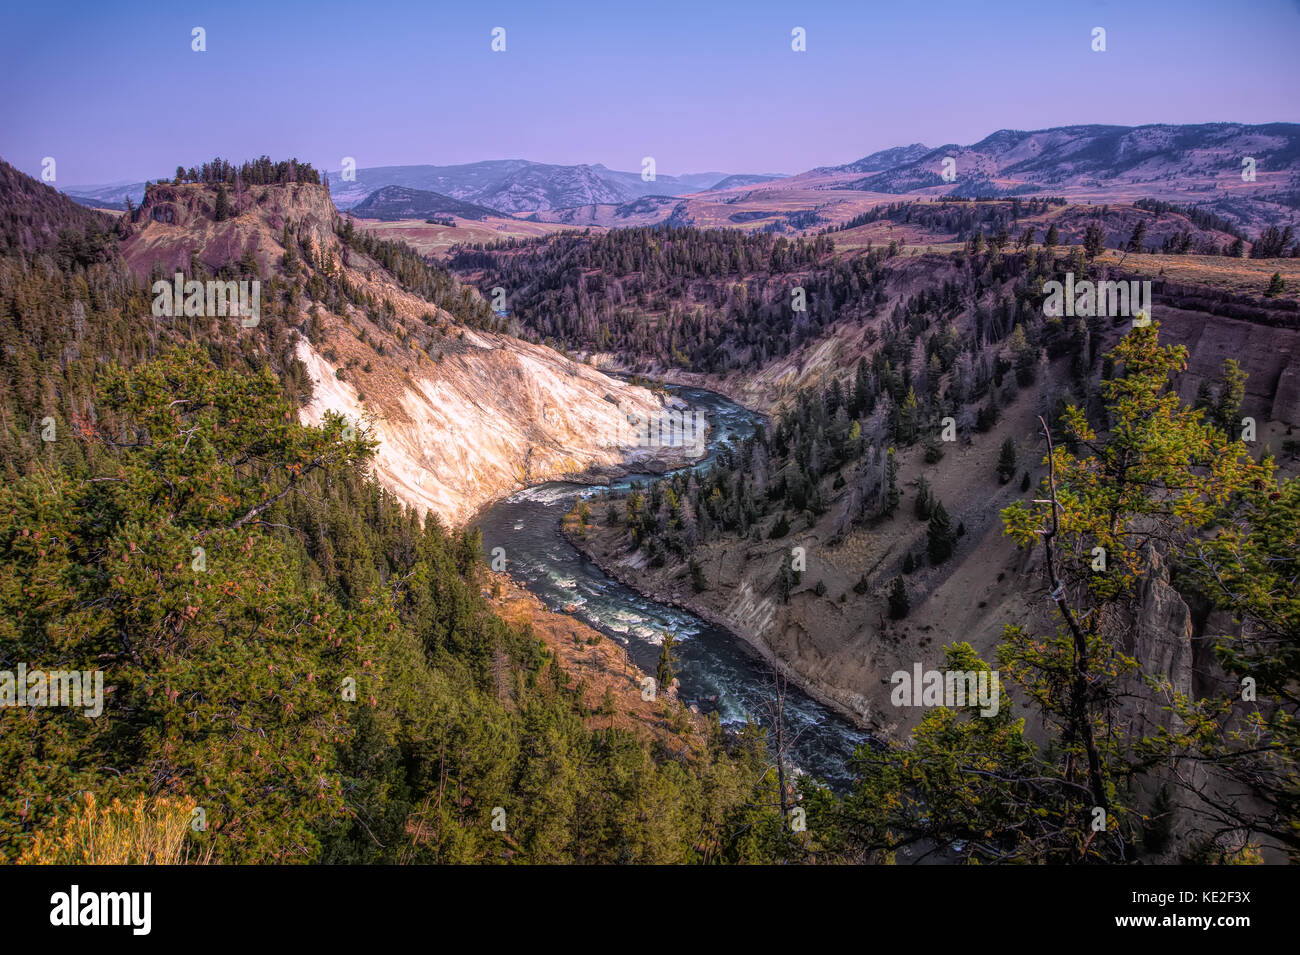 August 22, 2017 - Yellowstone National Park - Stock Image